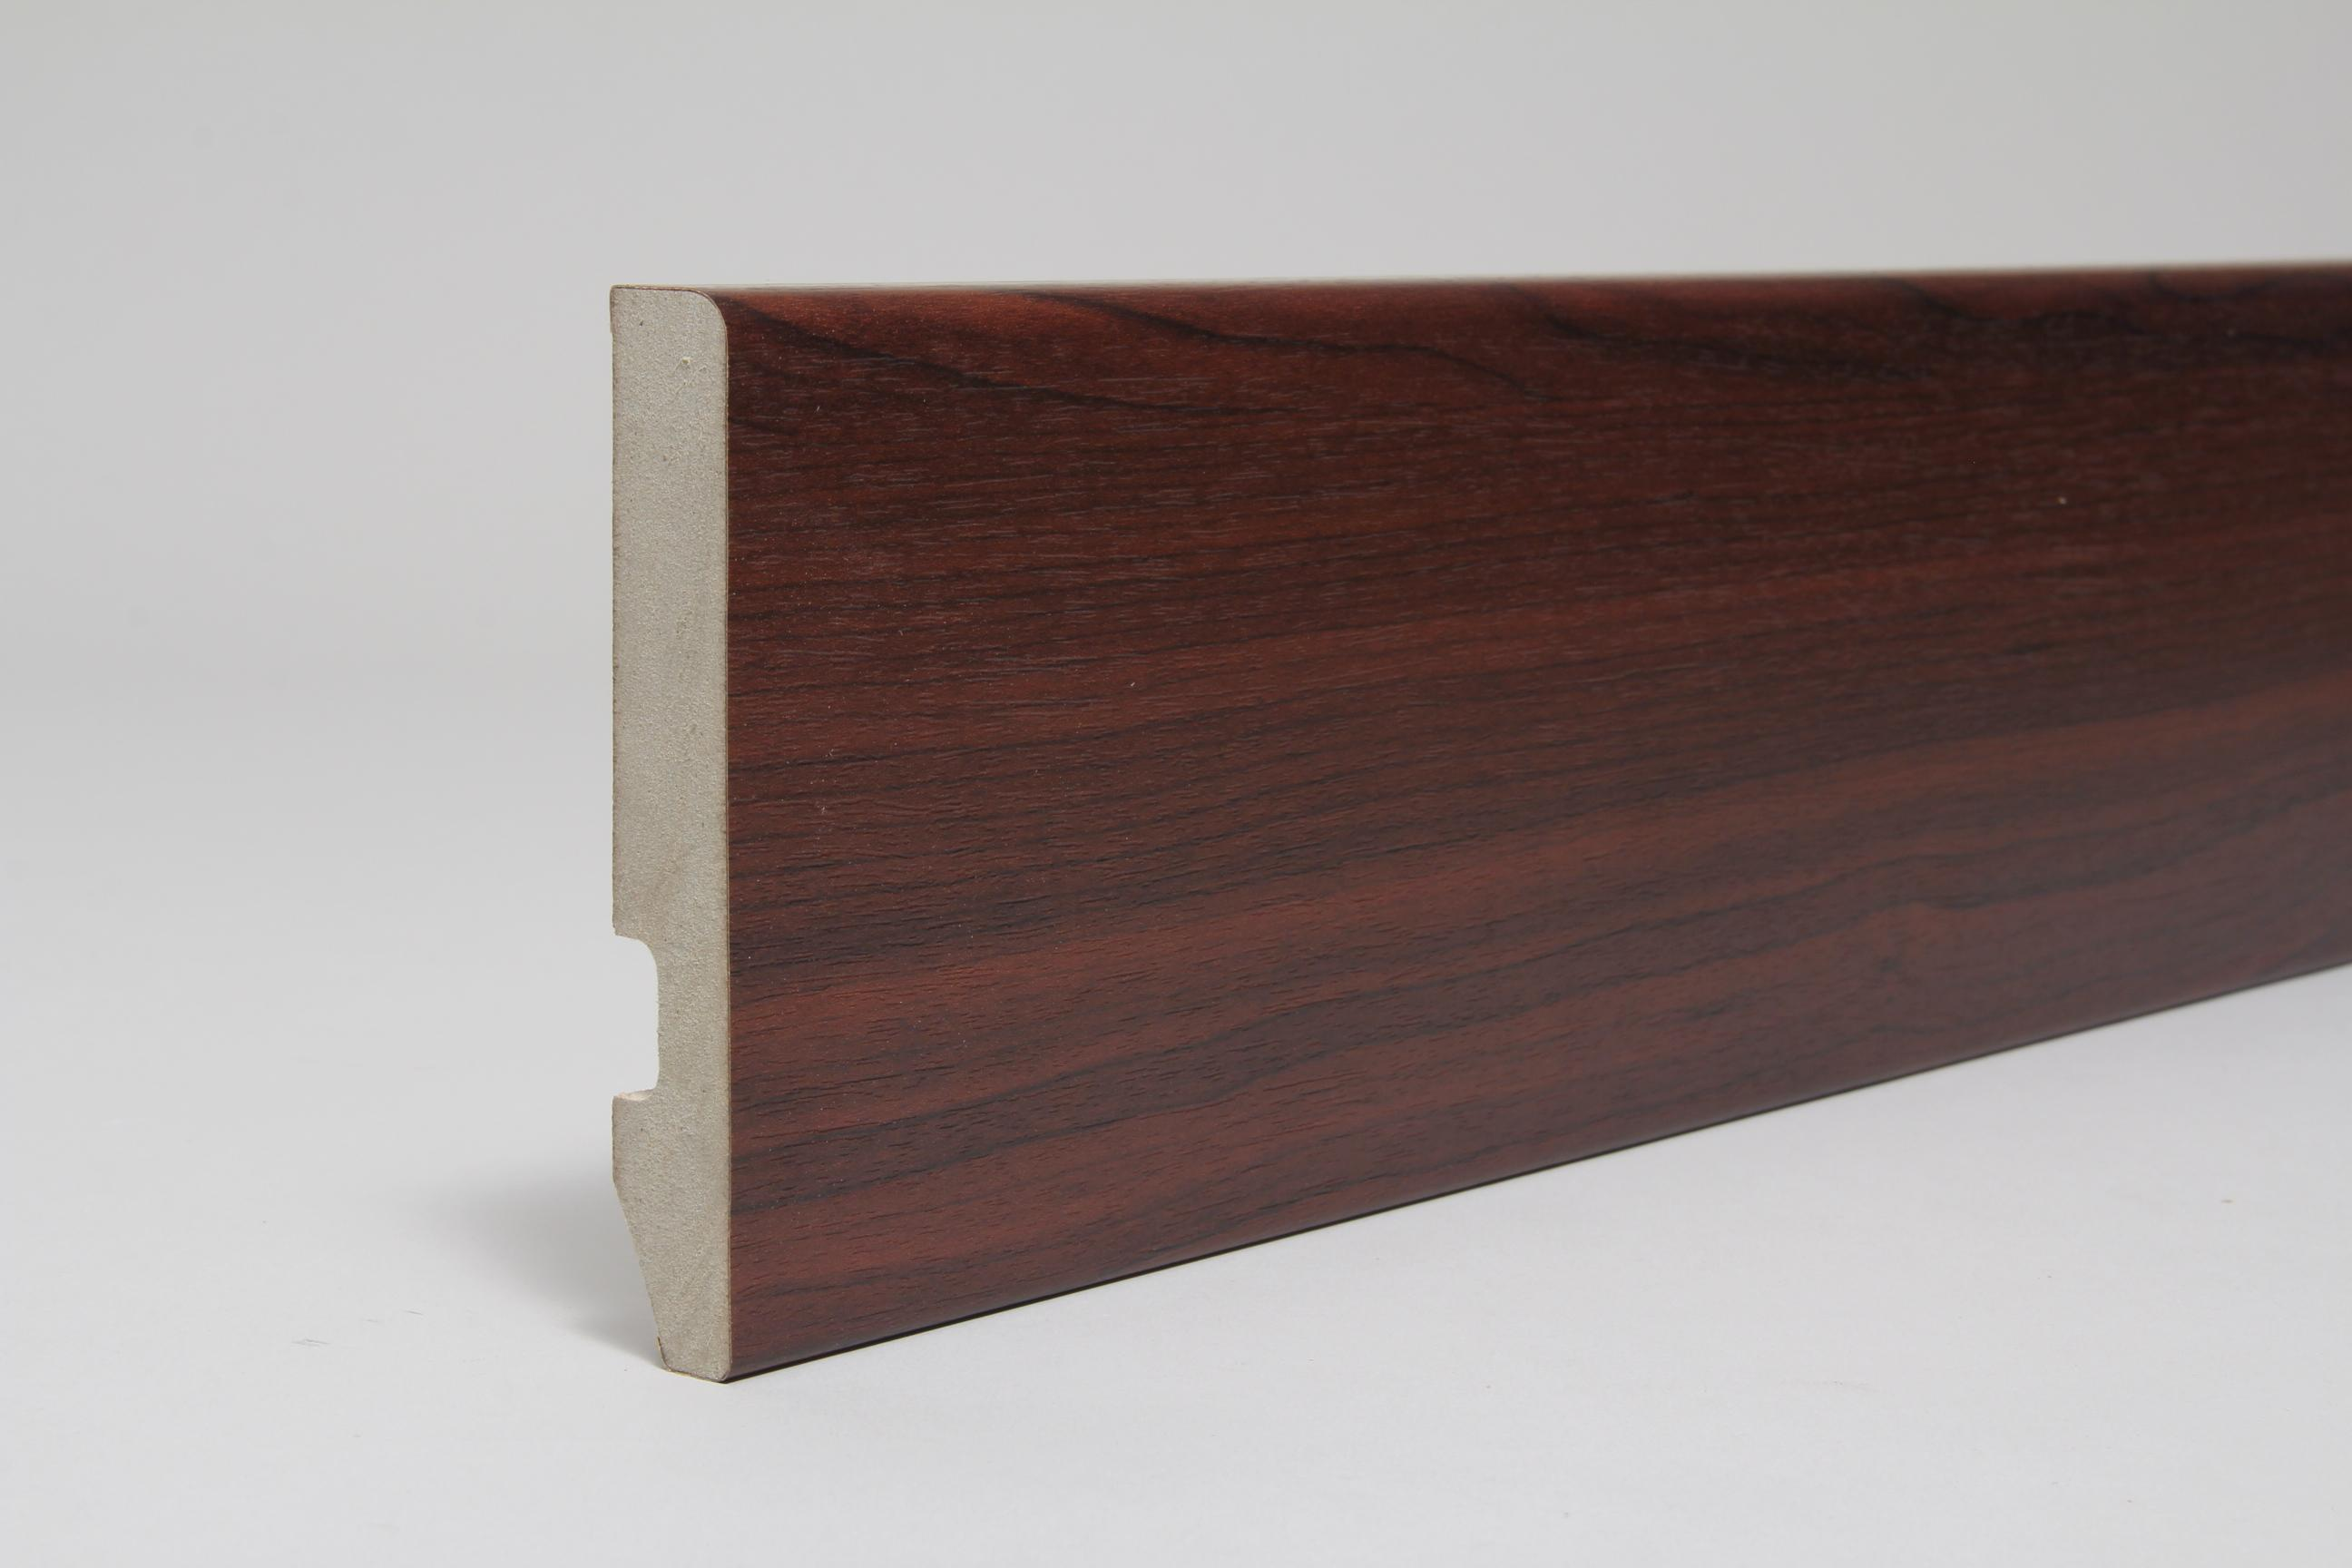 Rounded One Edge 18 x 119 x 4.4 Mtr Rosewood Fully Finished Foil Wrapped (Special Offer)